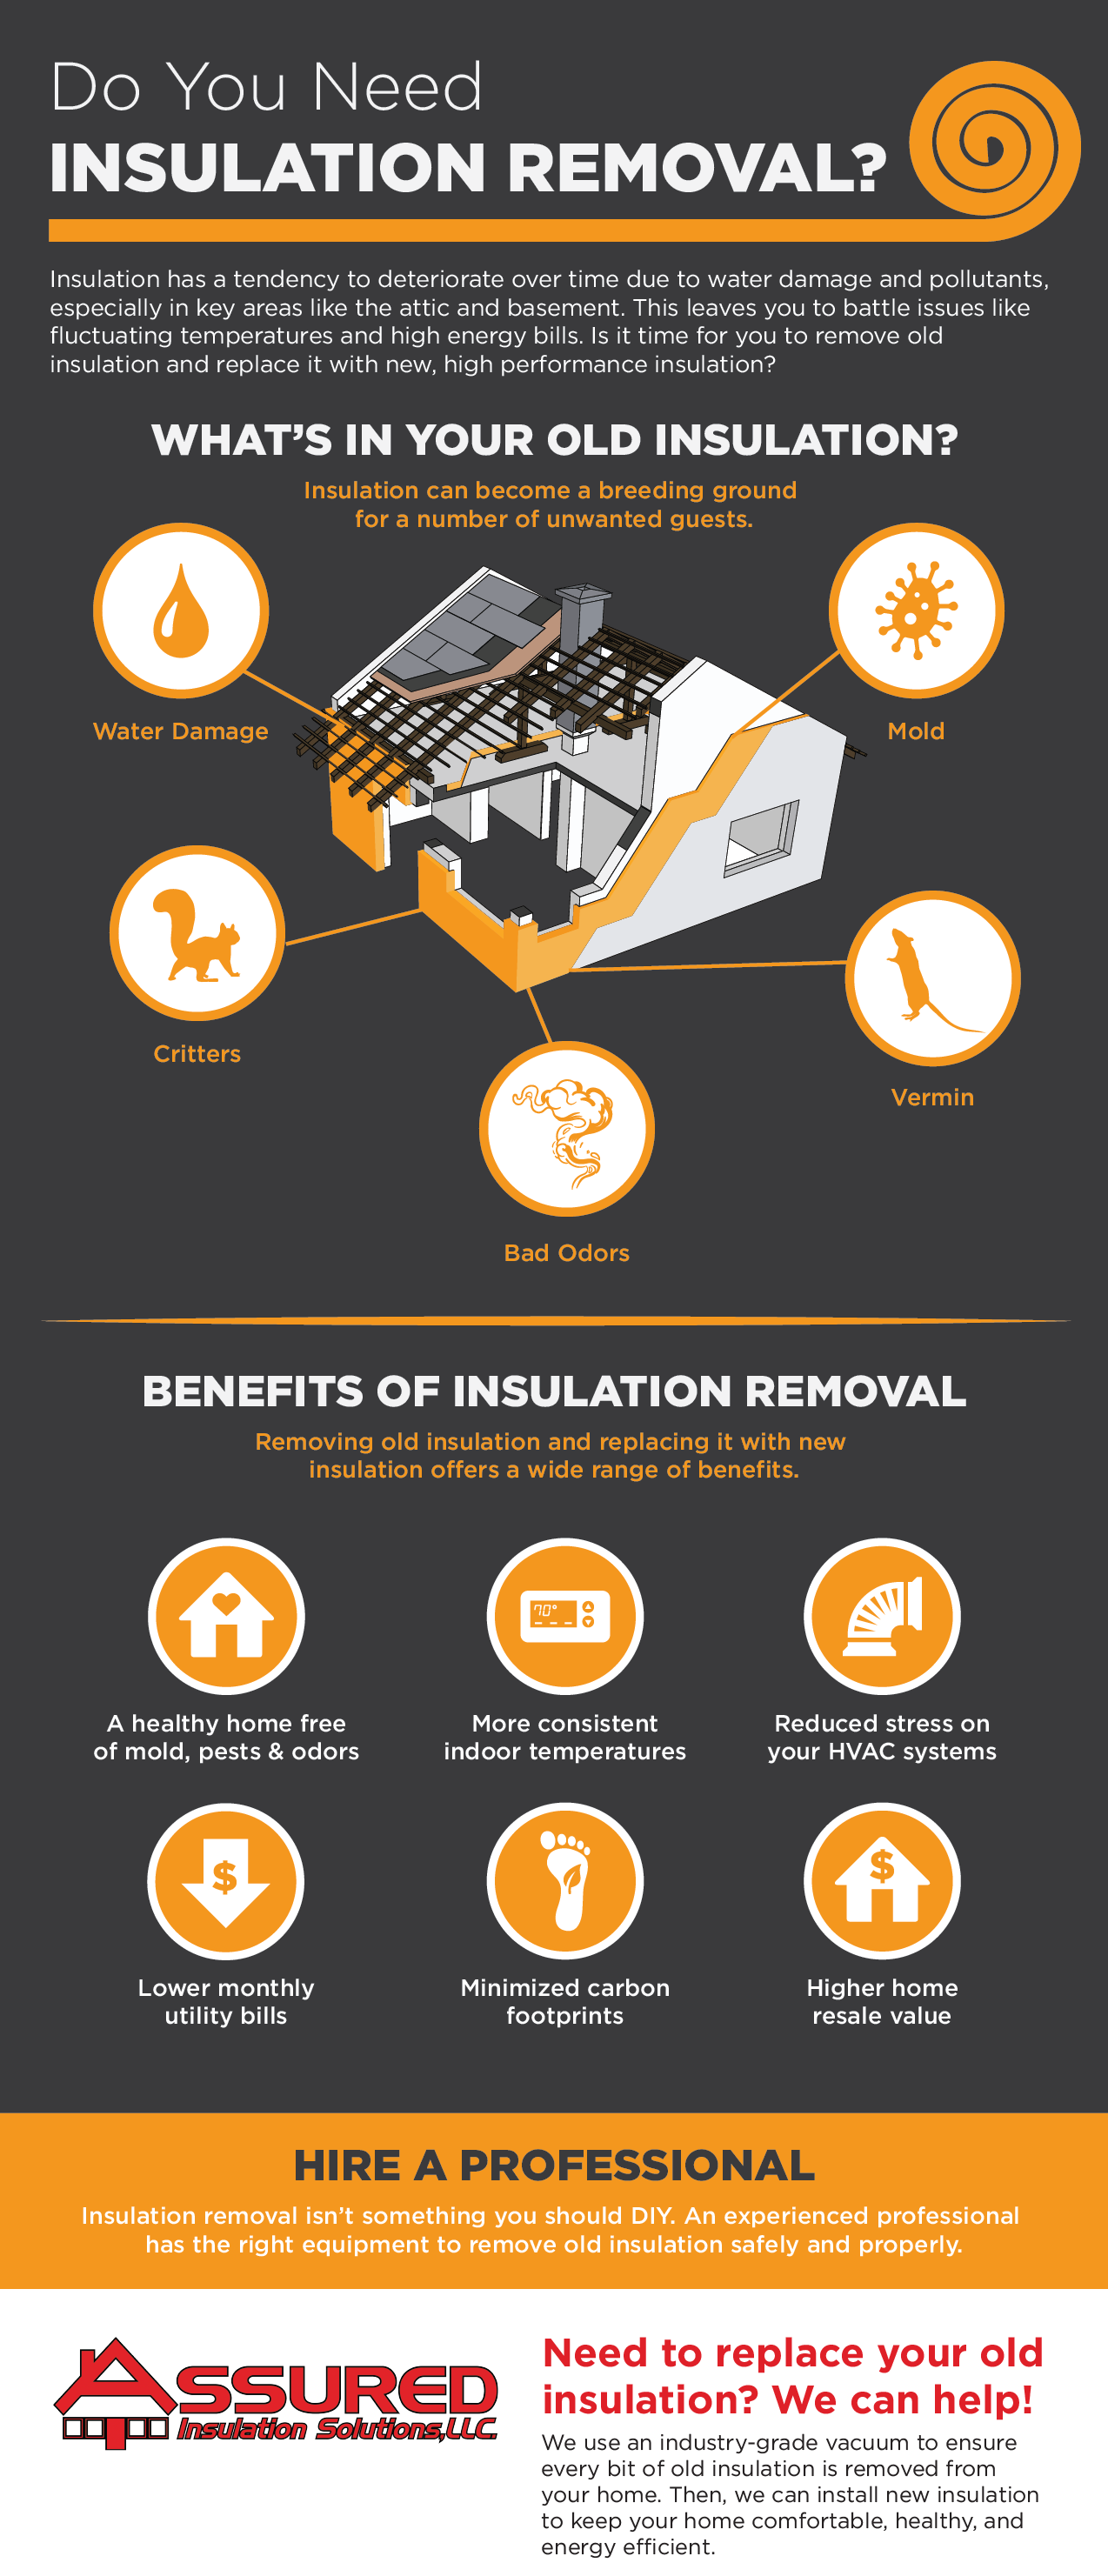 insulation, home performance, energy efficiency, assured, IL